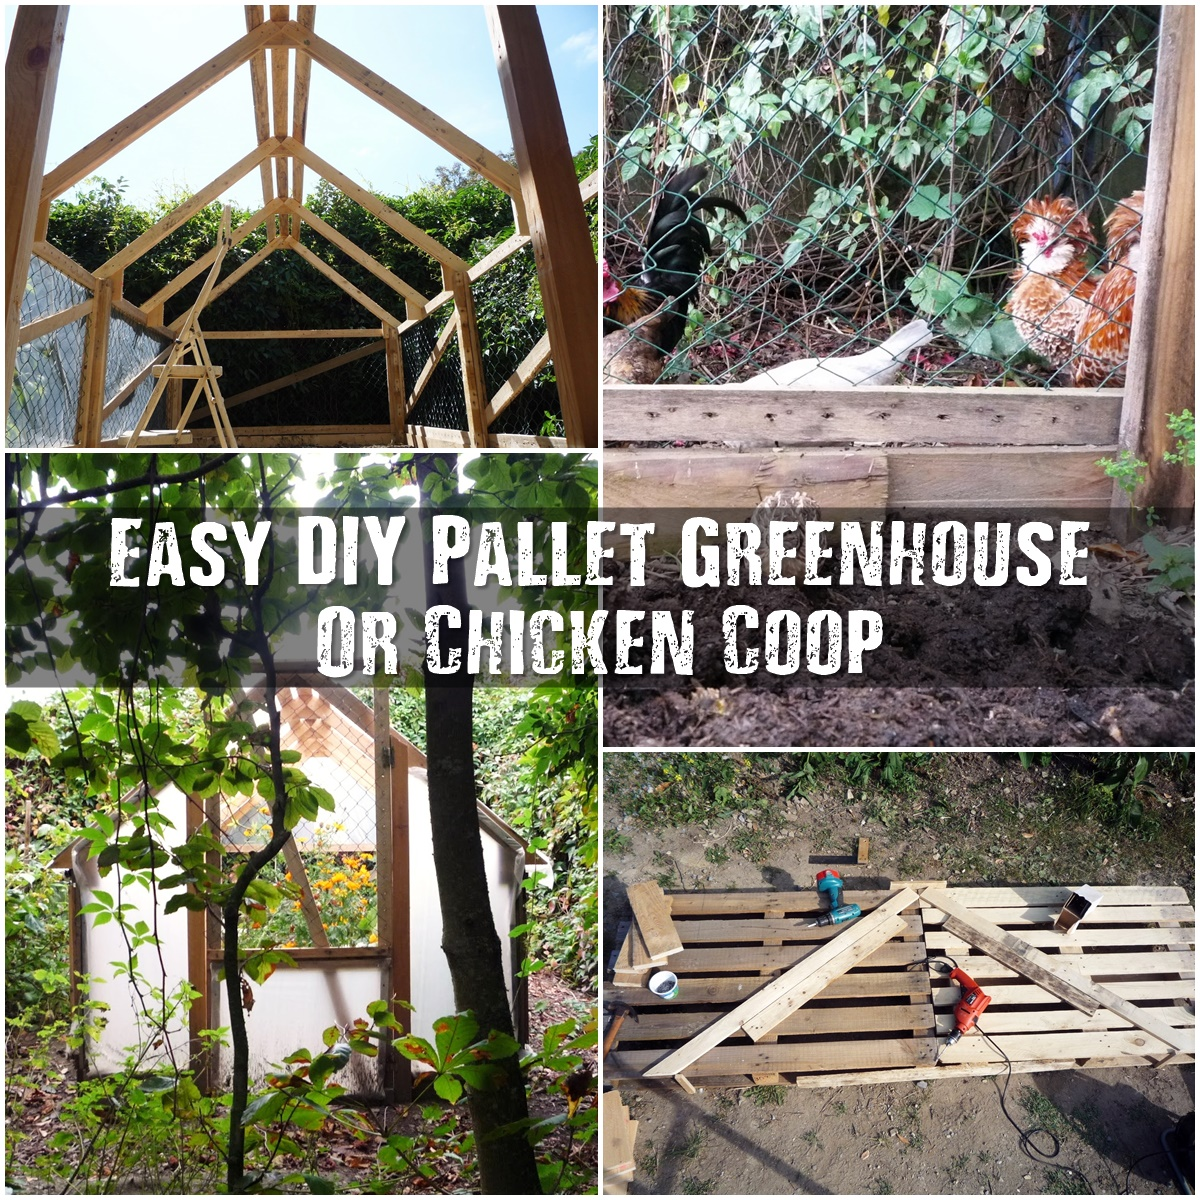 Easy diy pallet greenhouse or chicken coop shtf for Build a greenhouse from pallets